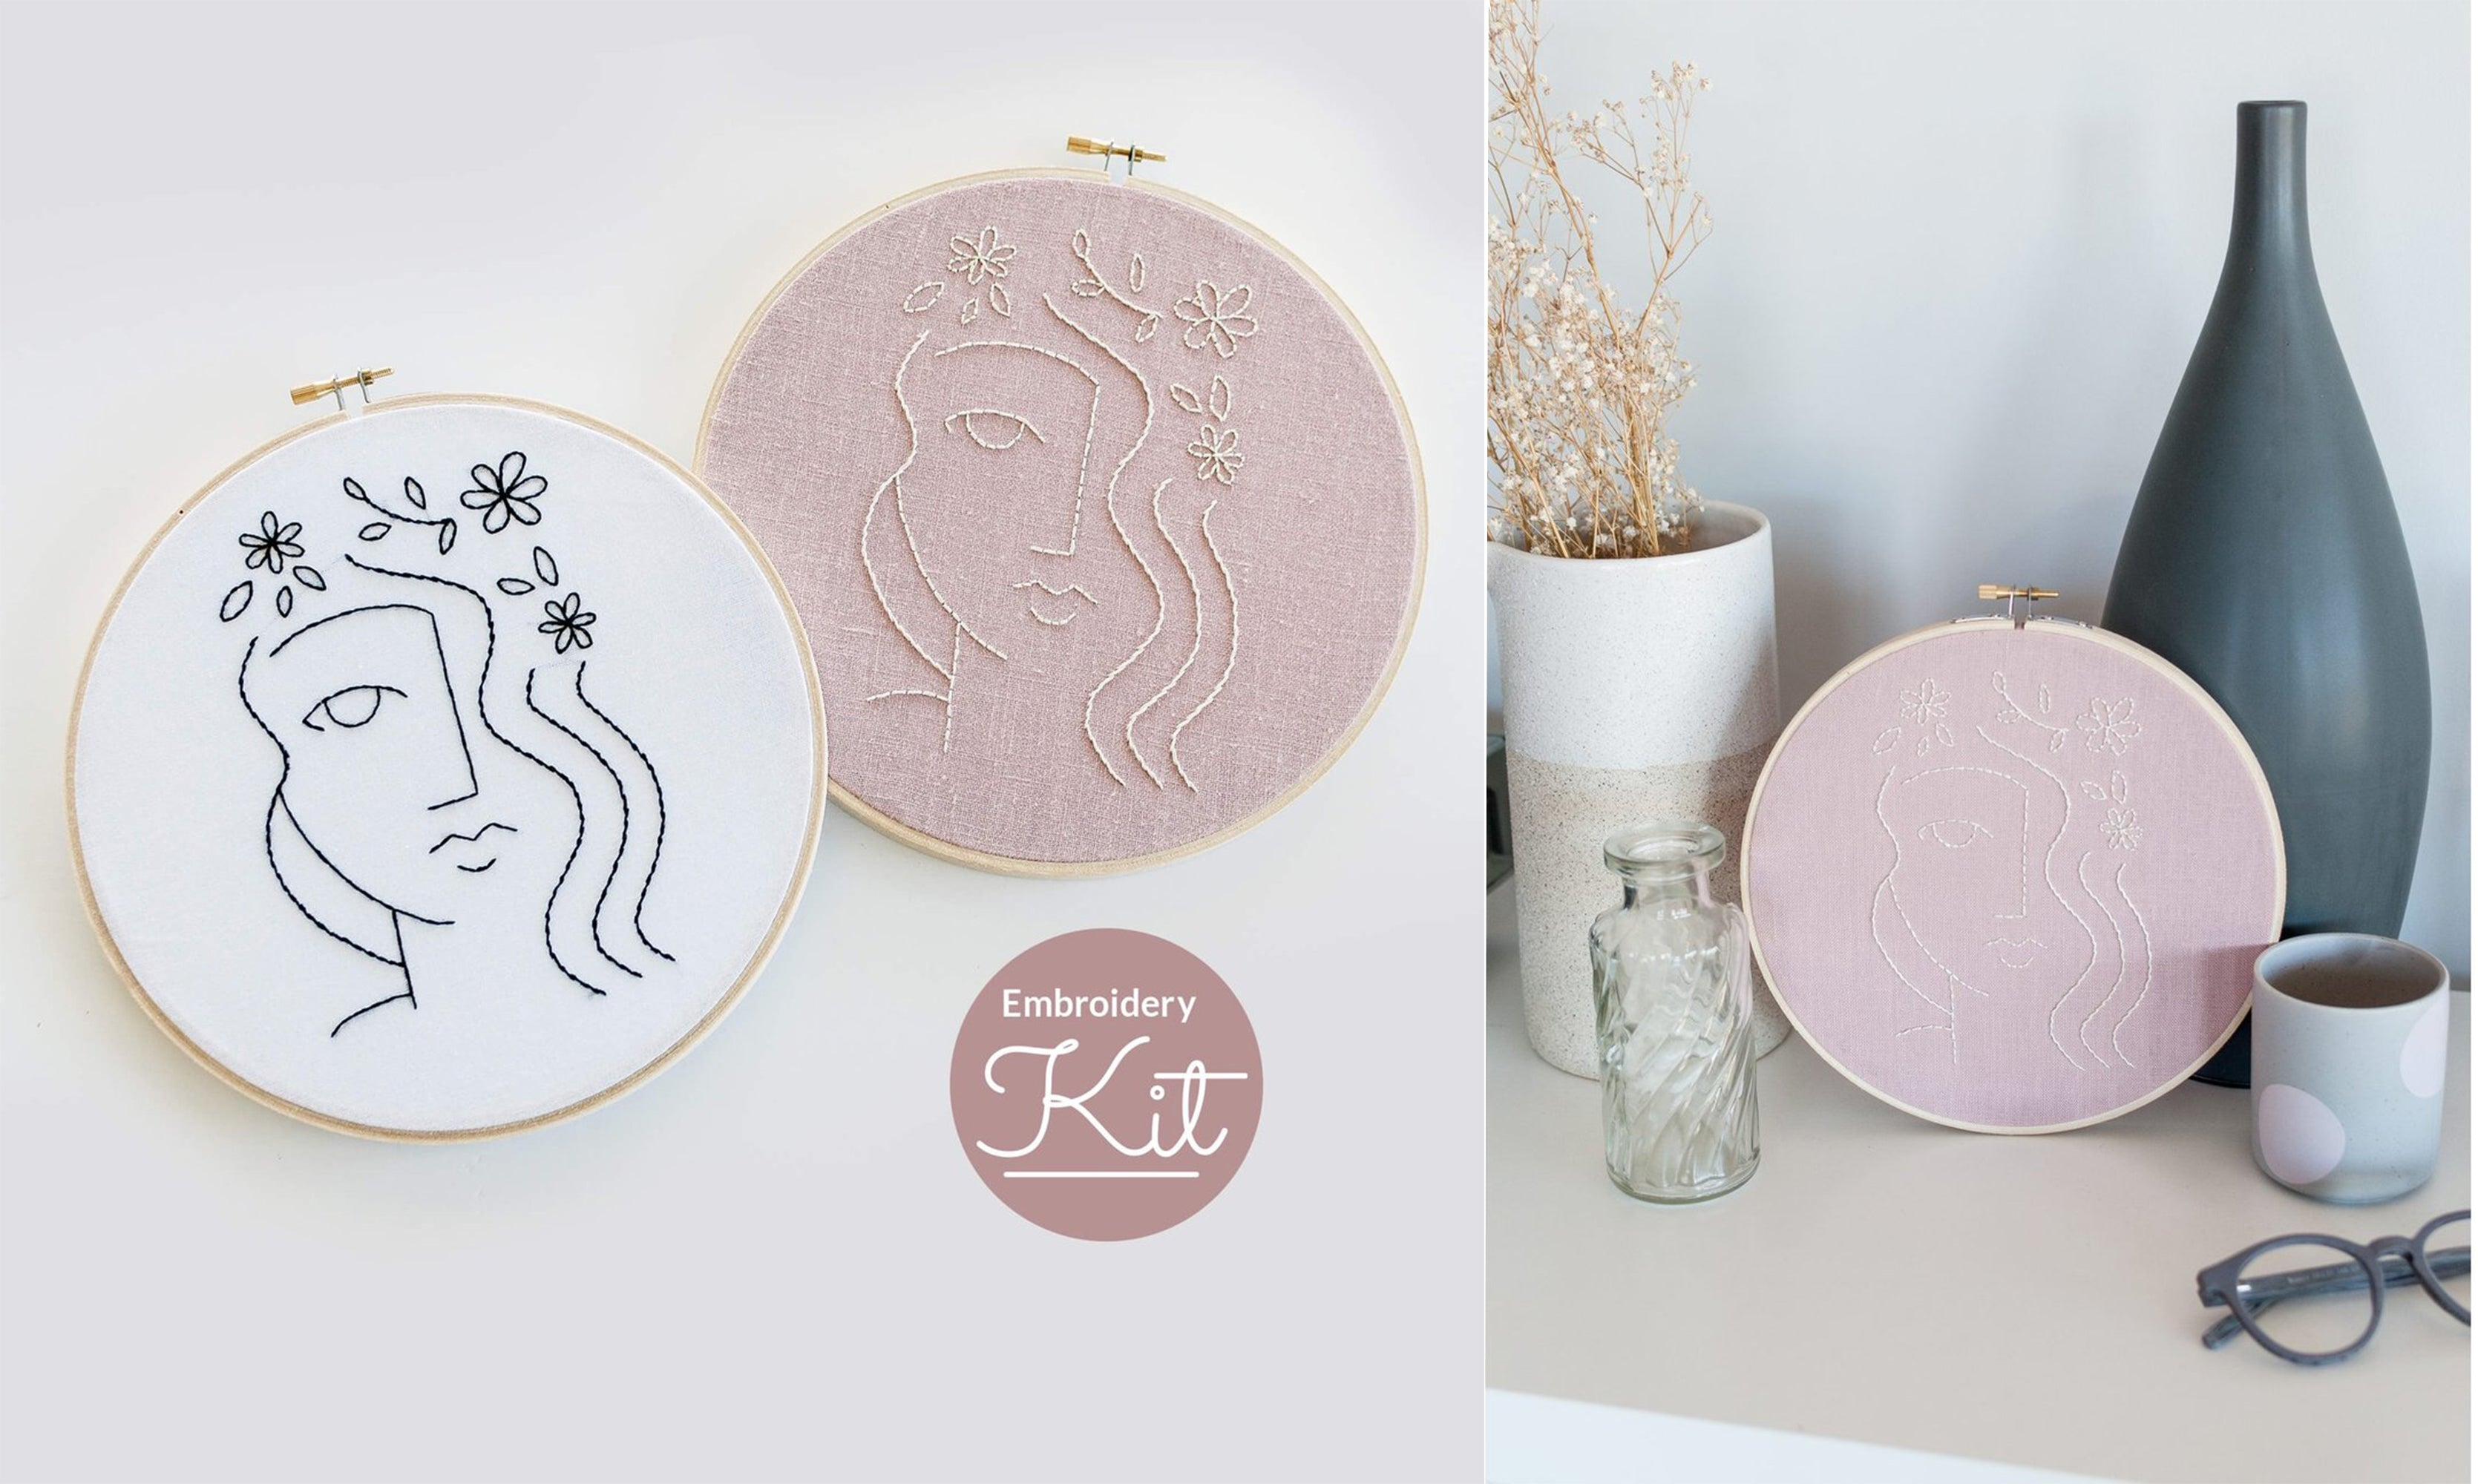 flora face embroidery kit Brynn&co